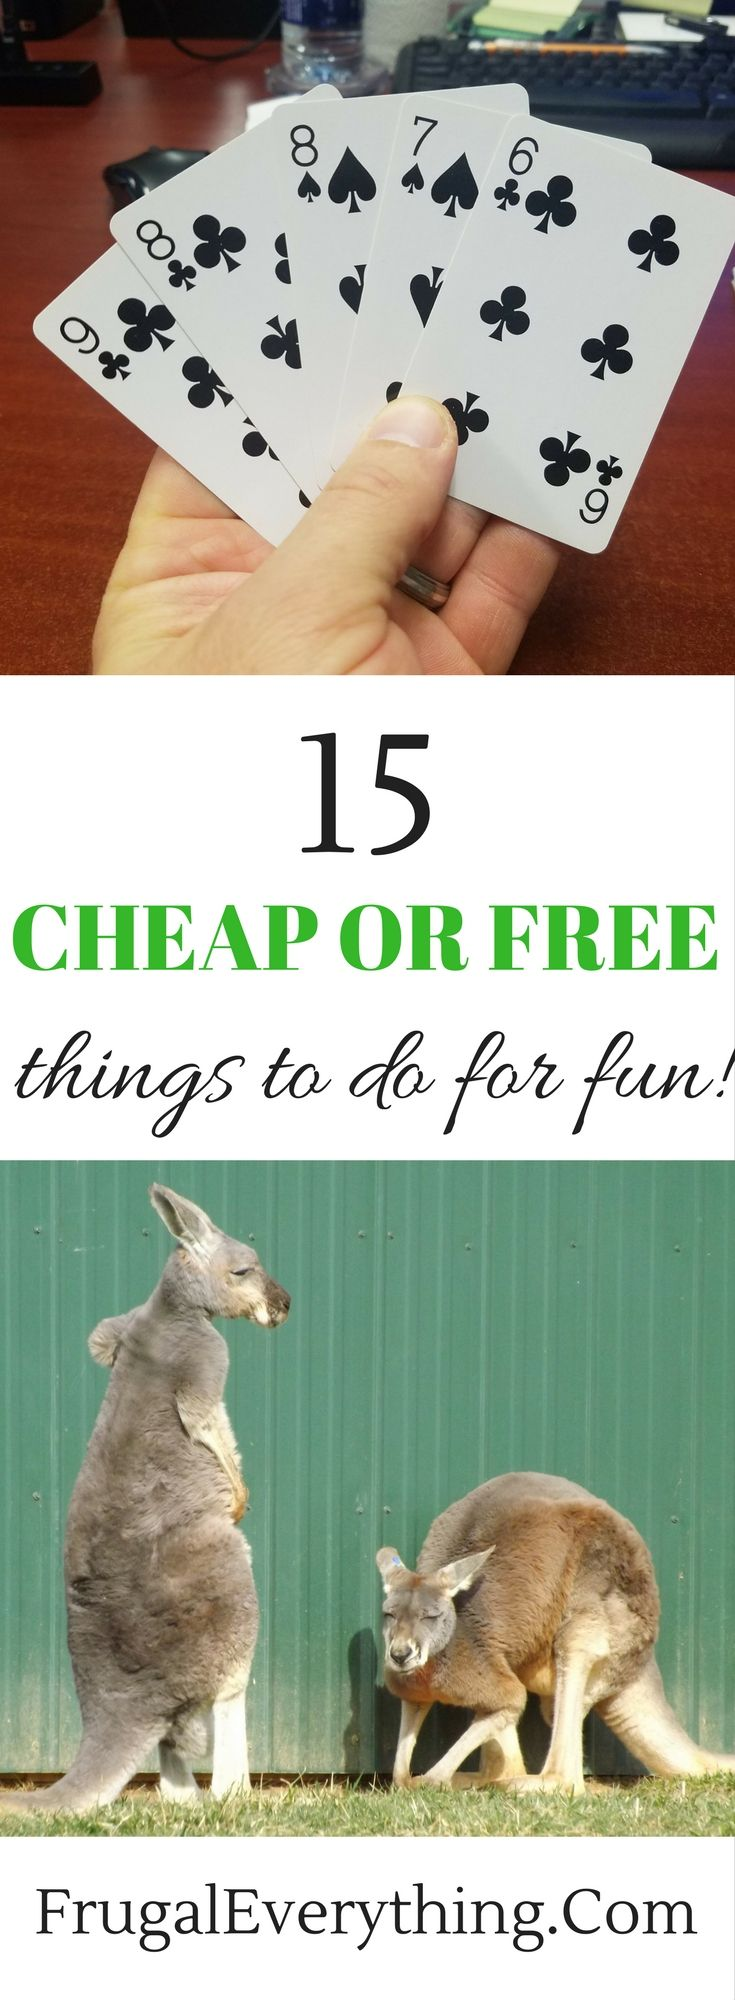 Don't have any money to spend on having fun?  Check out these 15 cheap or free fun activities!